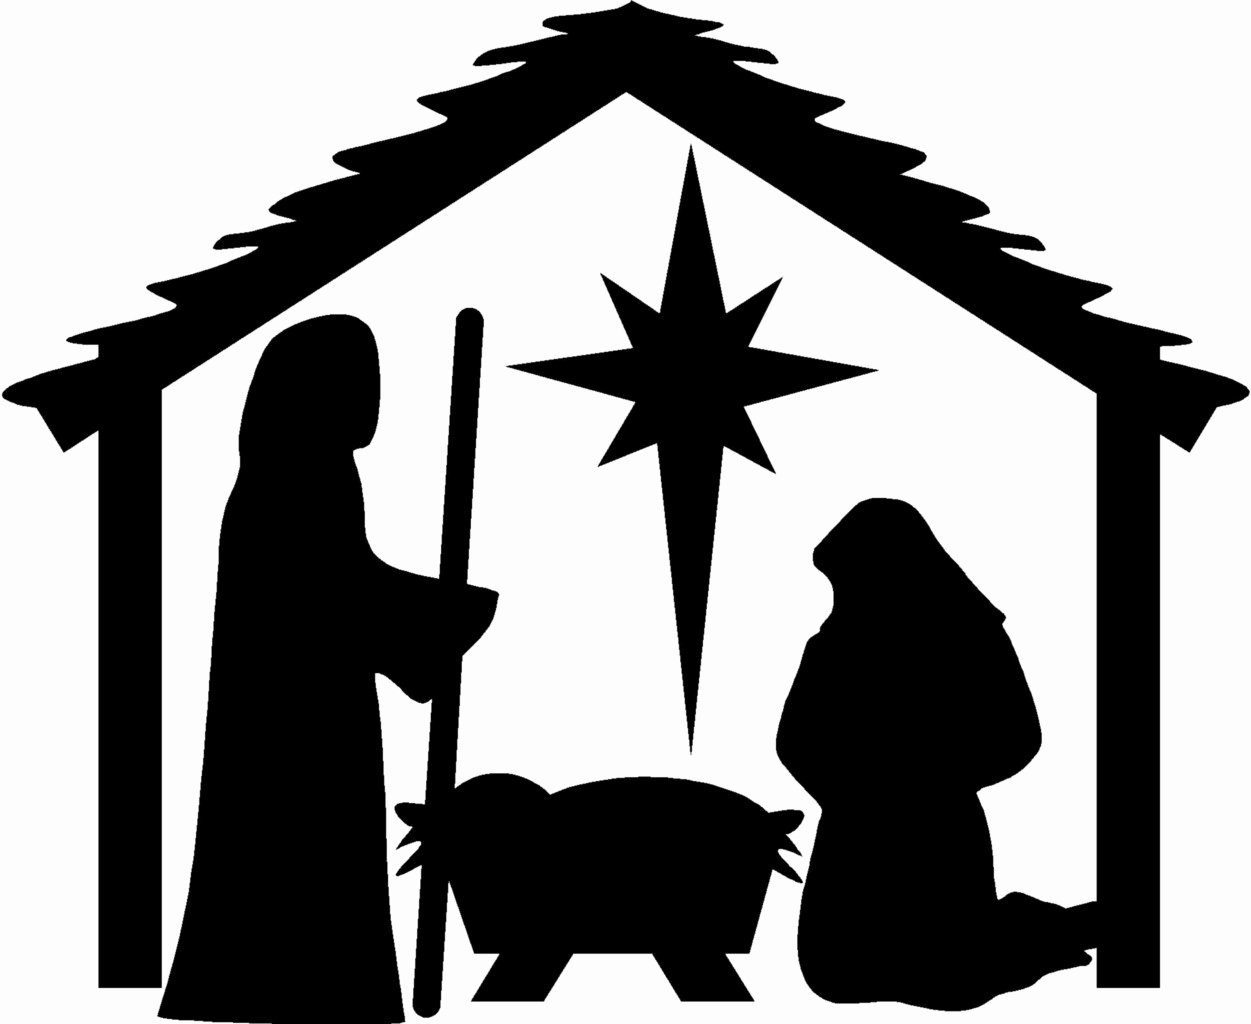 Free Printable Silhouette Of Nativity Scene Beautiful Nativity Christmas Wall Stickers Vinyl Decal Decor Art